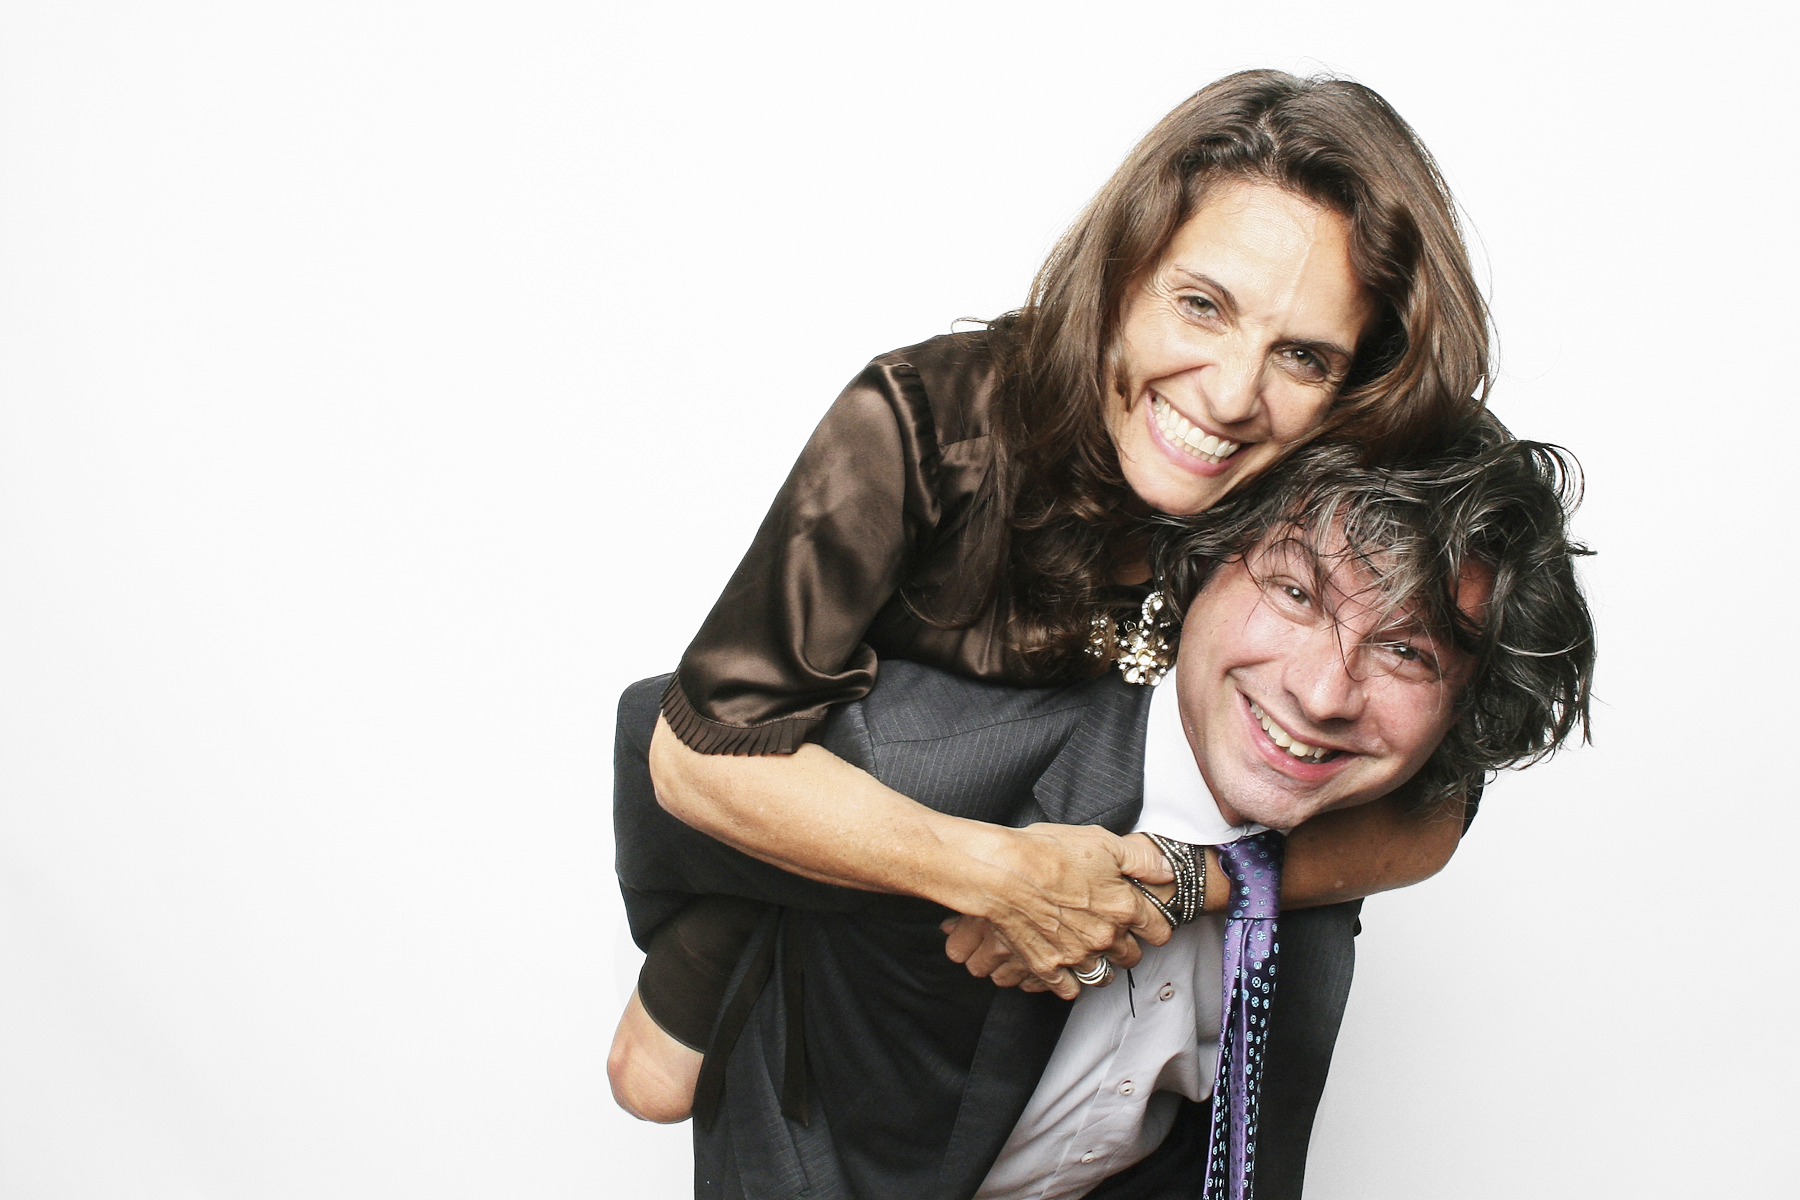 Mitzvah Parents Piggyback in photo booth